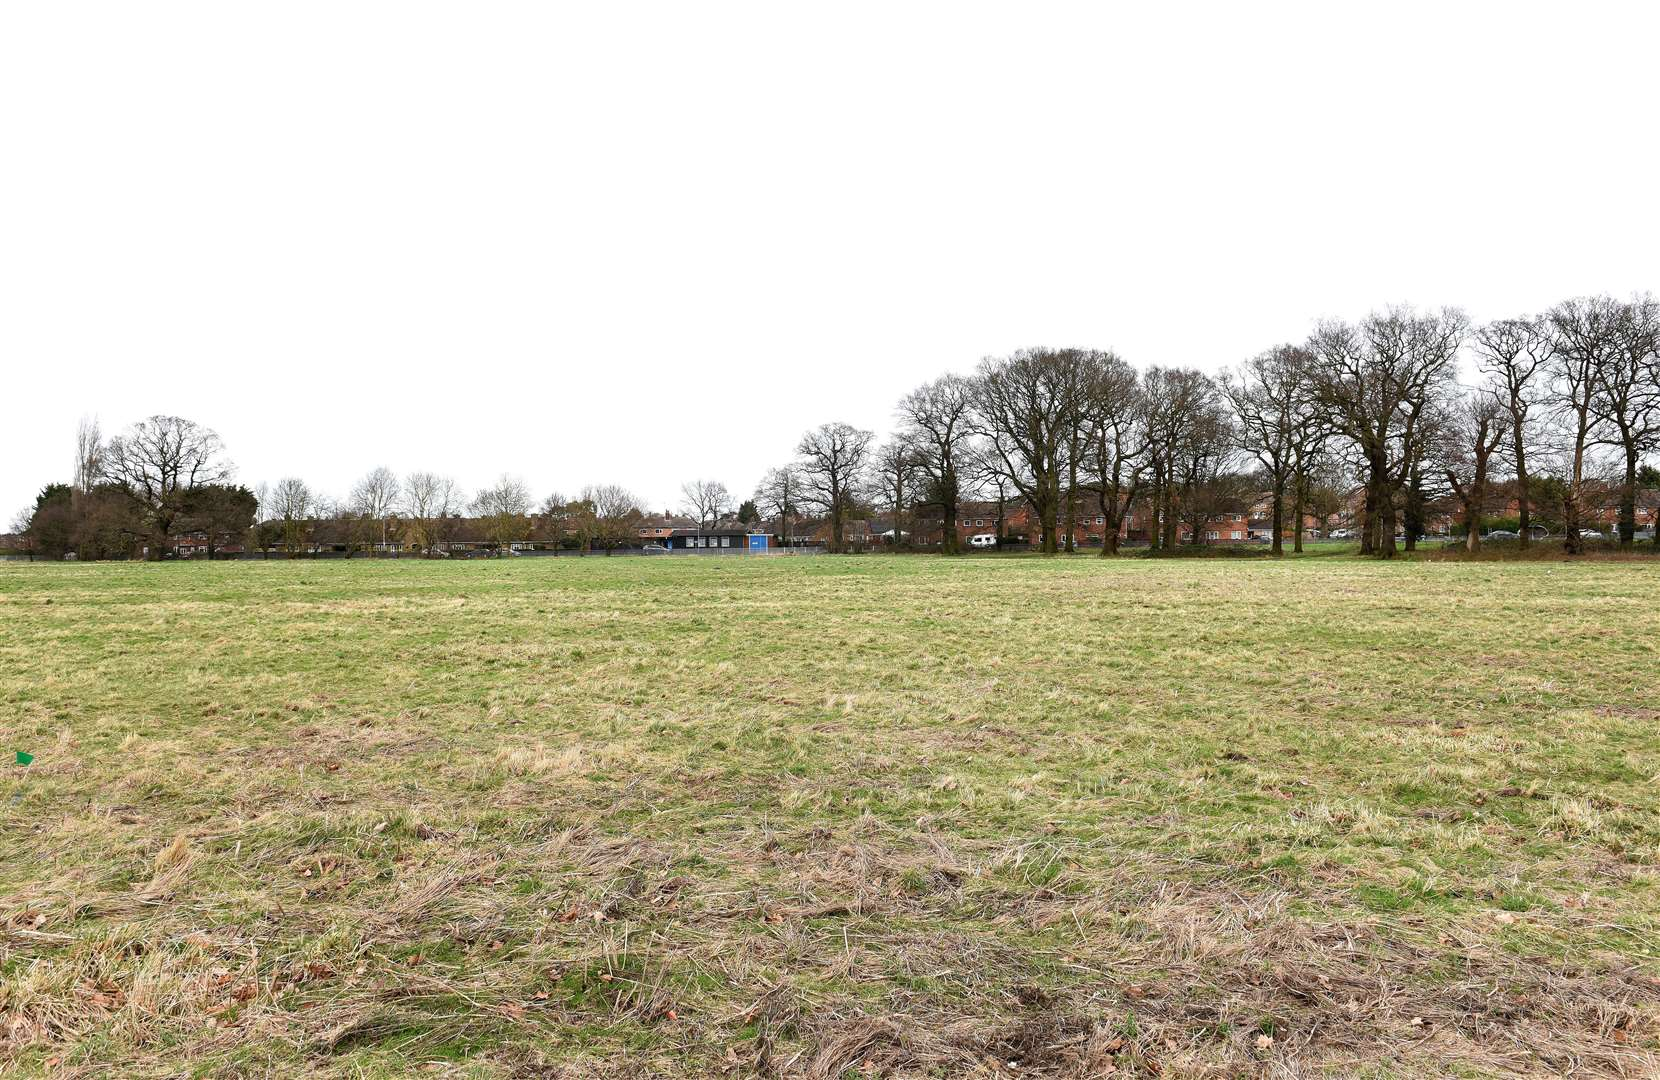 A decision on plans for hundreds of new homes on this land off Parkway, Gaywood, has been put on hold.